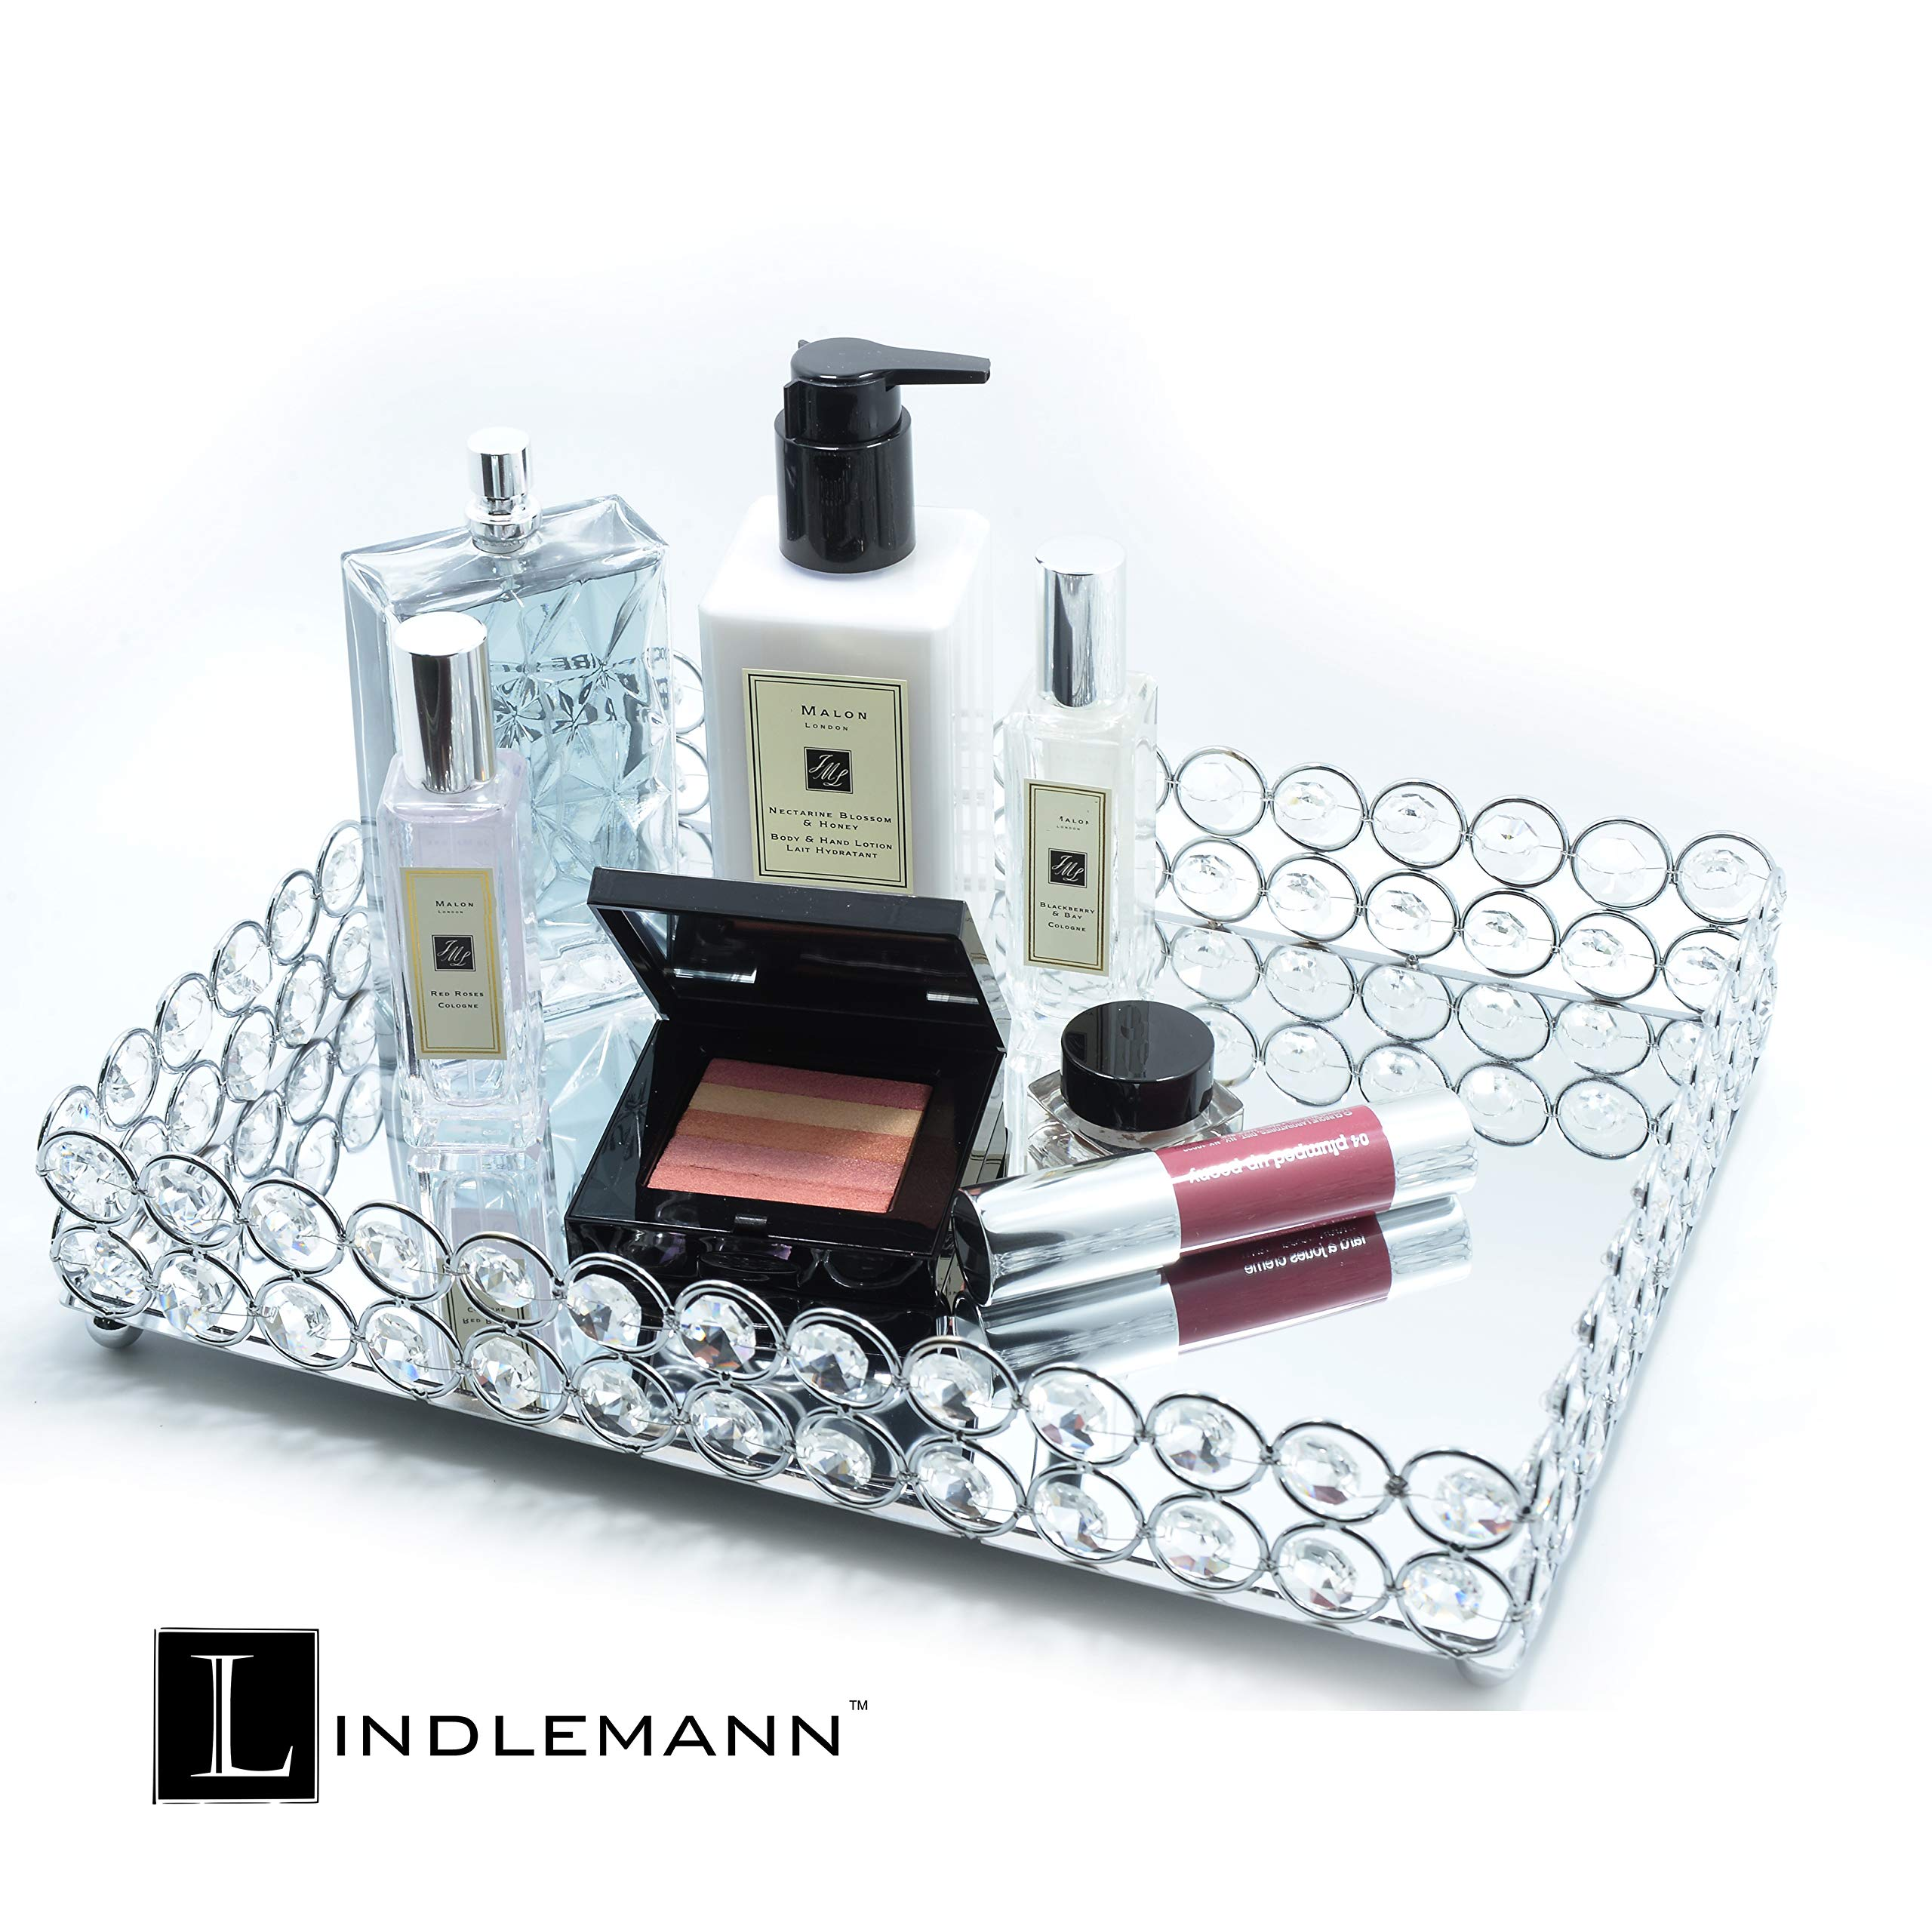 Lindlemann Mirrored Crystal Vanity Tray - Ornate Decorative Tray for Perfume, Jewelry and Makeup (Rectangle 12 x 9 inches, Silver) by Lindlemann (Image #5)